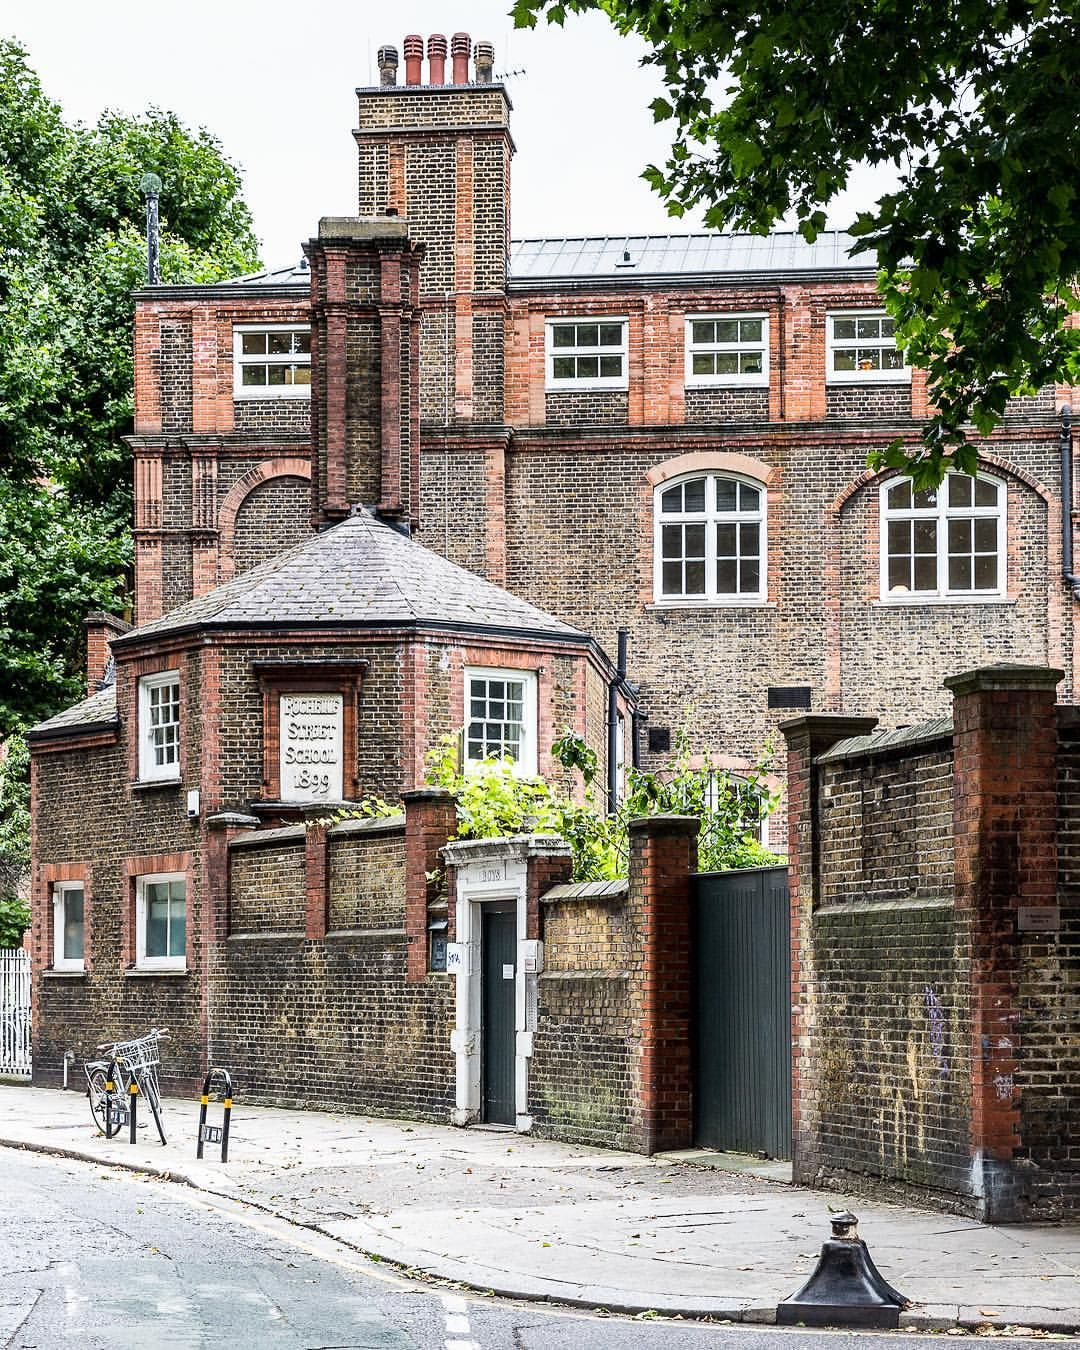 Shoreditch England: Arnold Circus In London's Shoreditch (With Images)